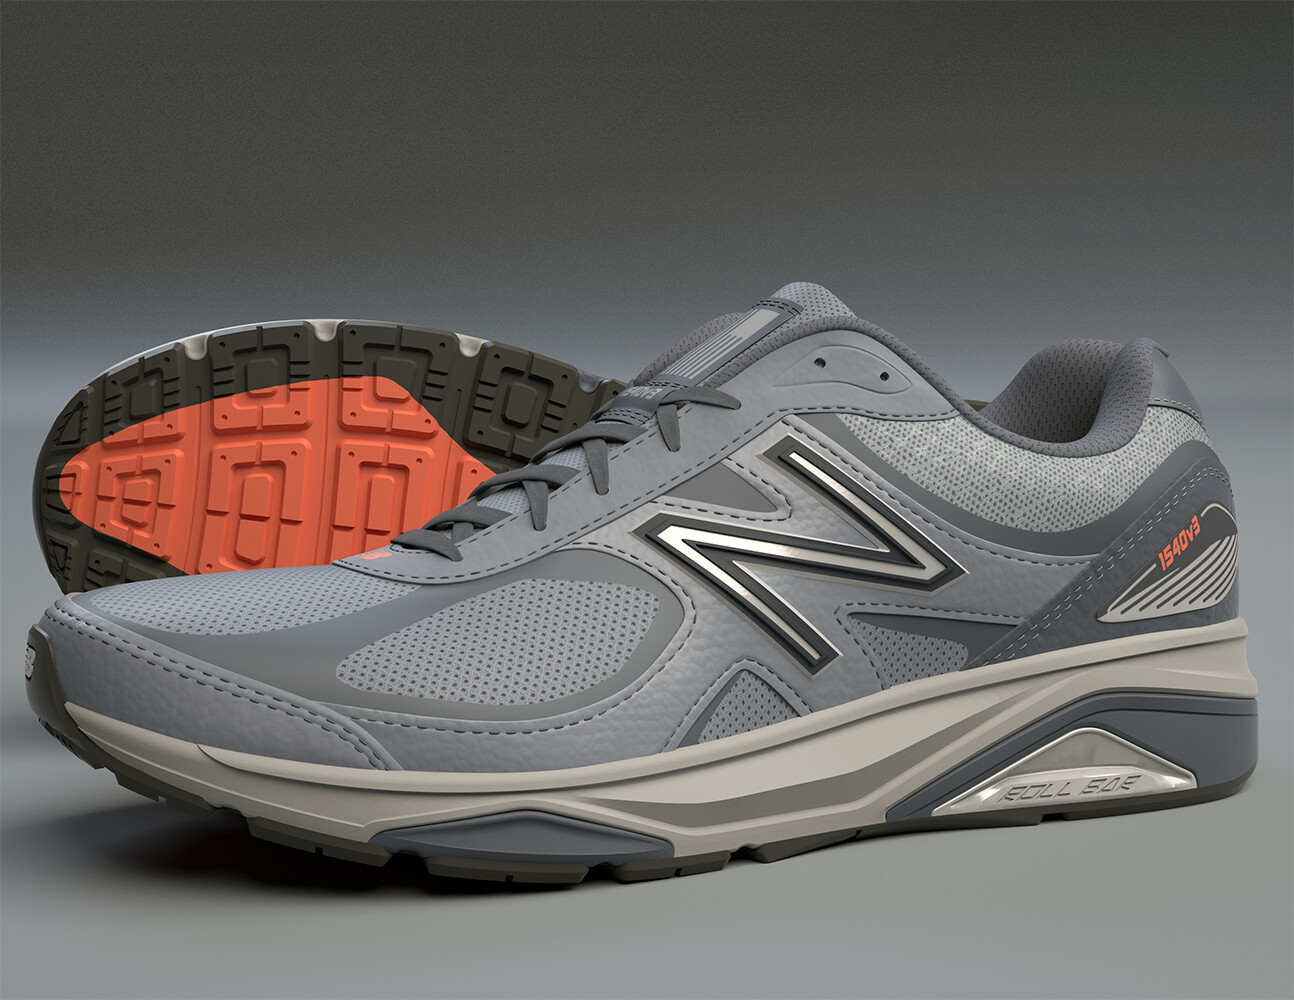 New Balance 1540v3 Shoe.  Made in Modo, is all quads and was rendered in Modo.